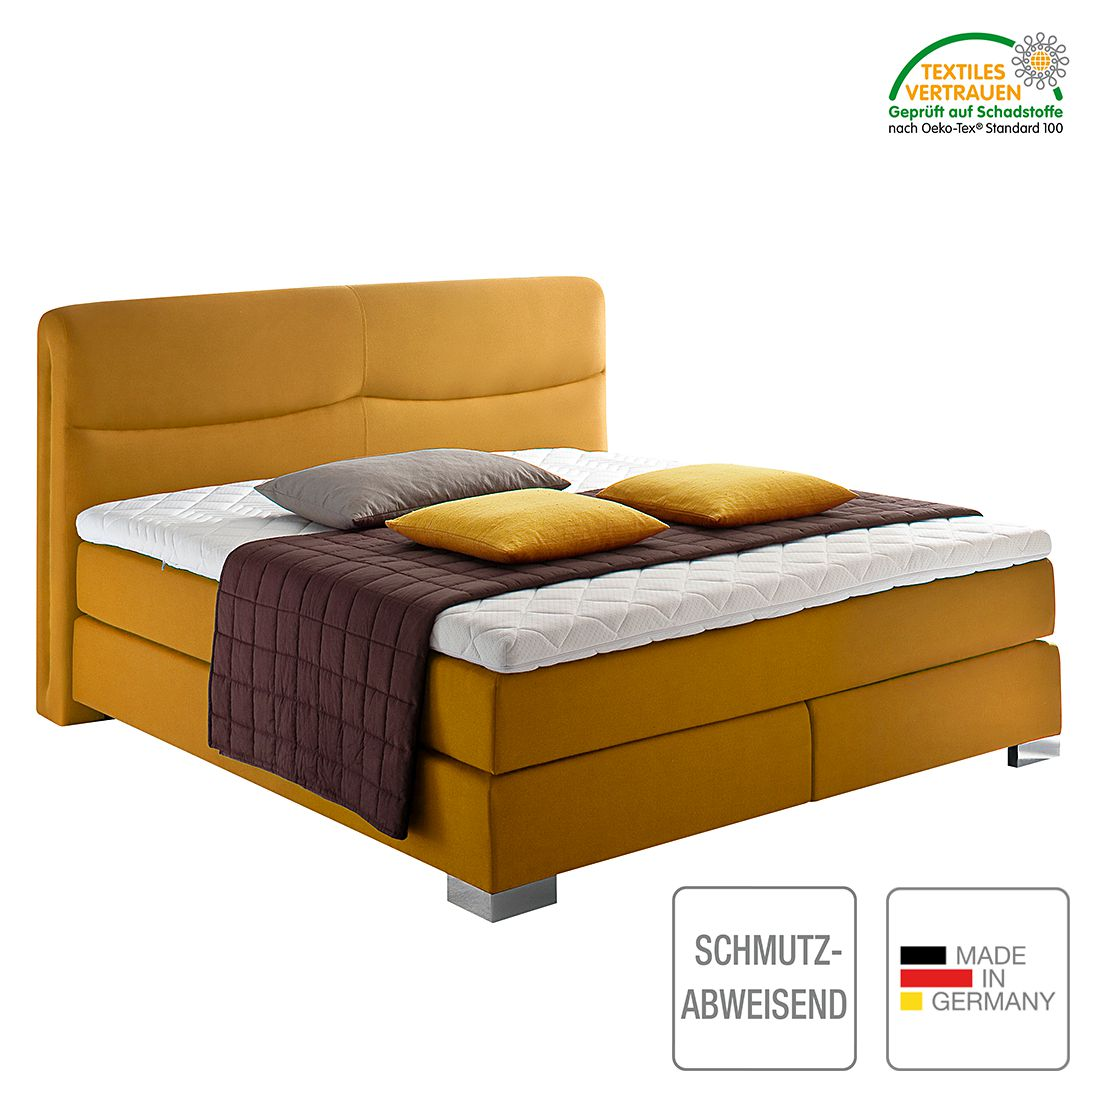 boxspringbett scala webstoff h2 bis 80 kg kaltschaumtopper bonellfederkern multi. Black Bedroom Furniture Sets. Home Design Ideas